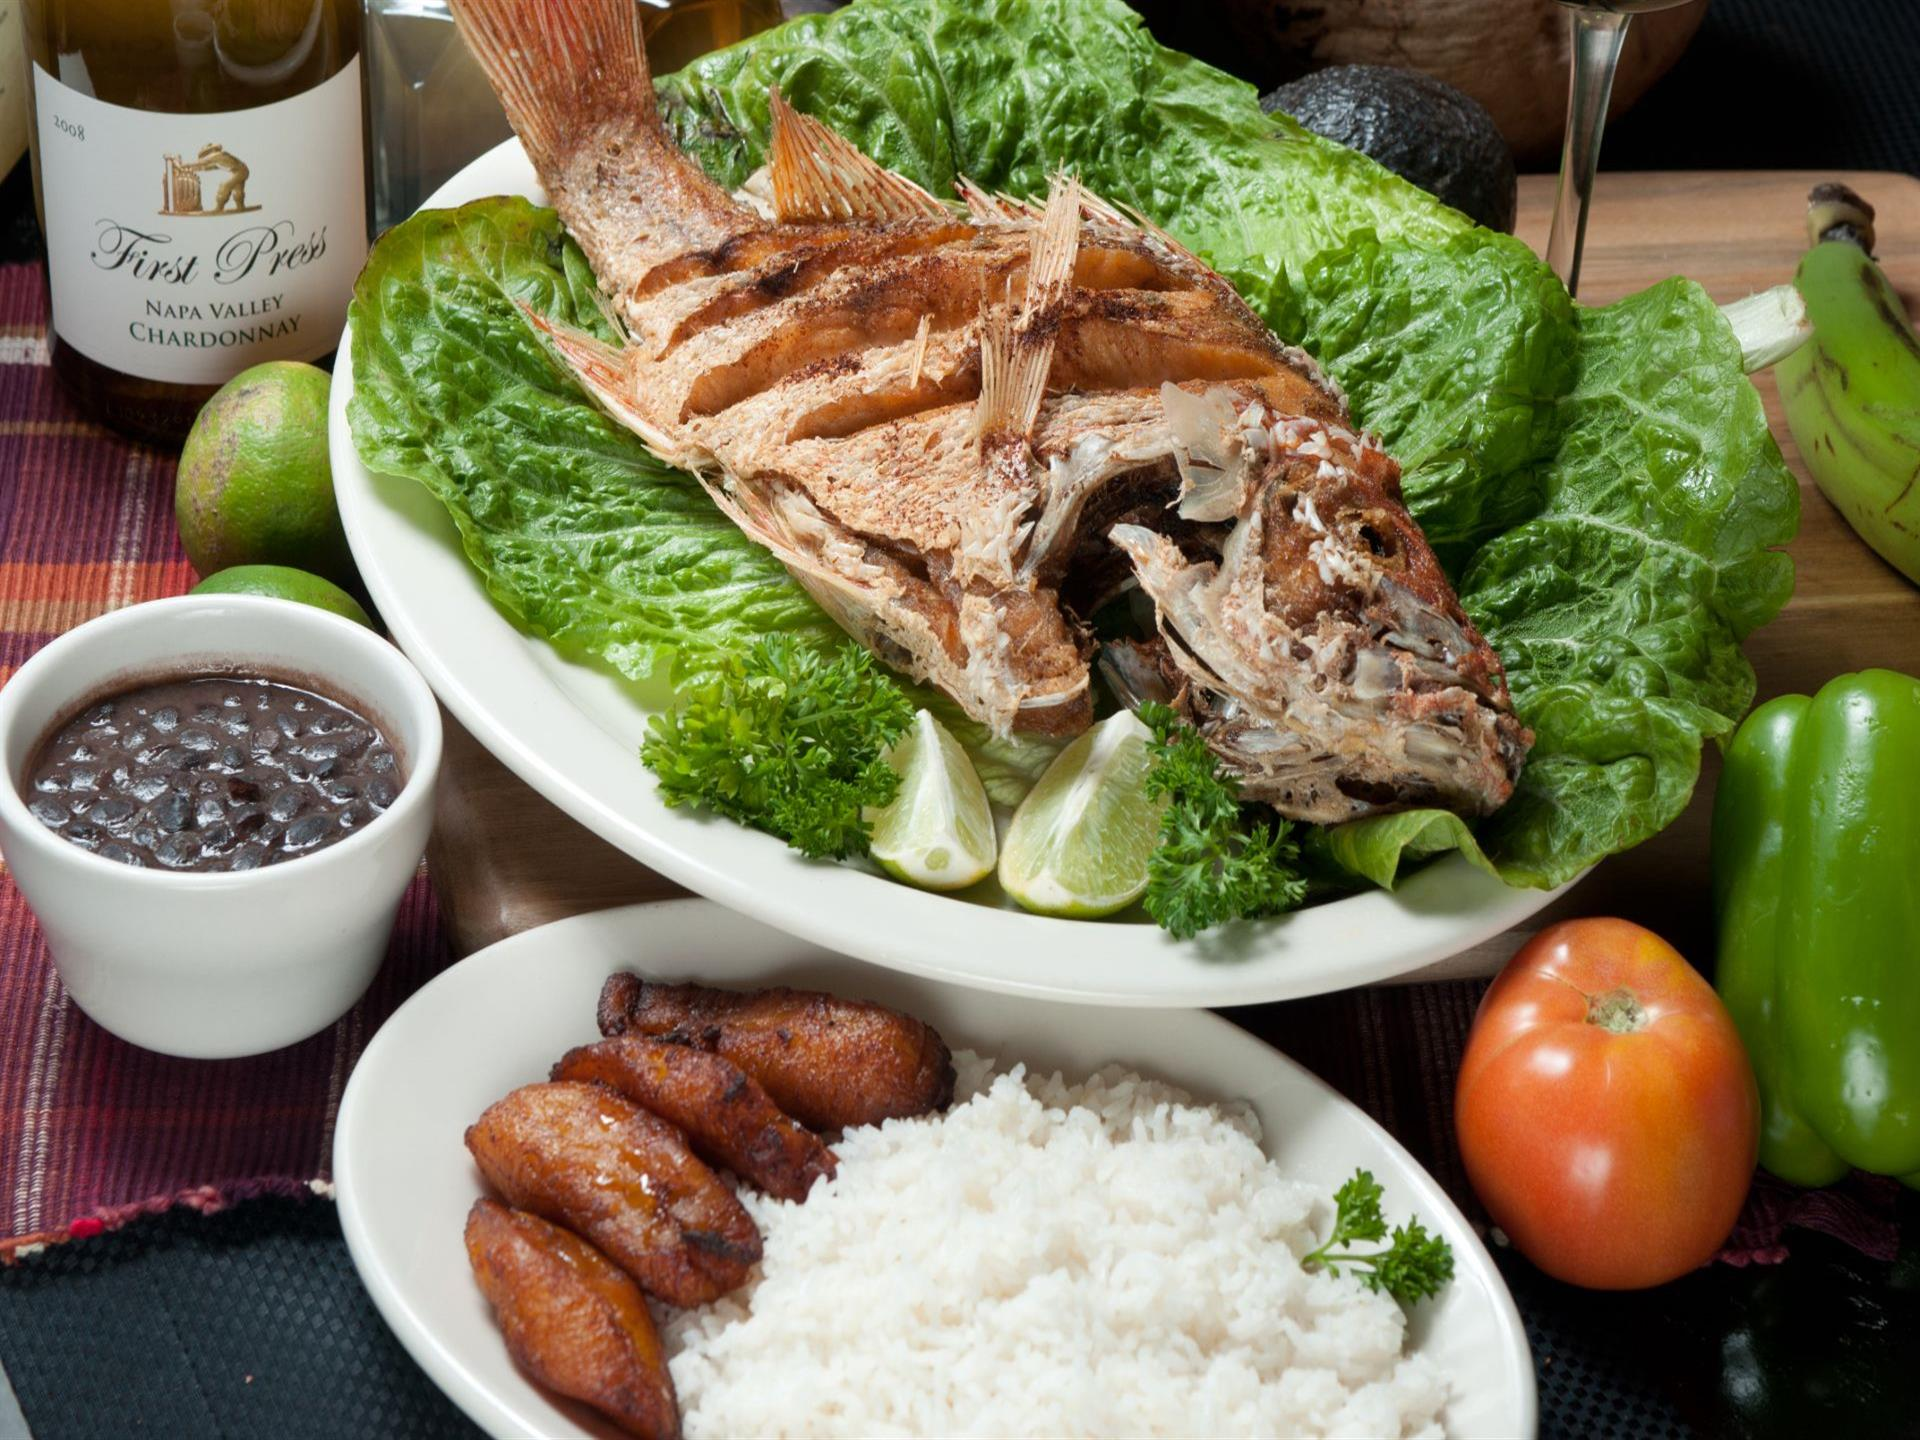 Pargo Entero Frito. Whole Fried Red Snapper on a bed of greens. White rice, fried plantains and black beans on the side. bottle of white wine, green pepper, tomato and avocado in the background.